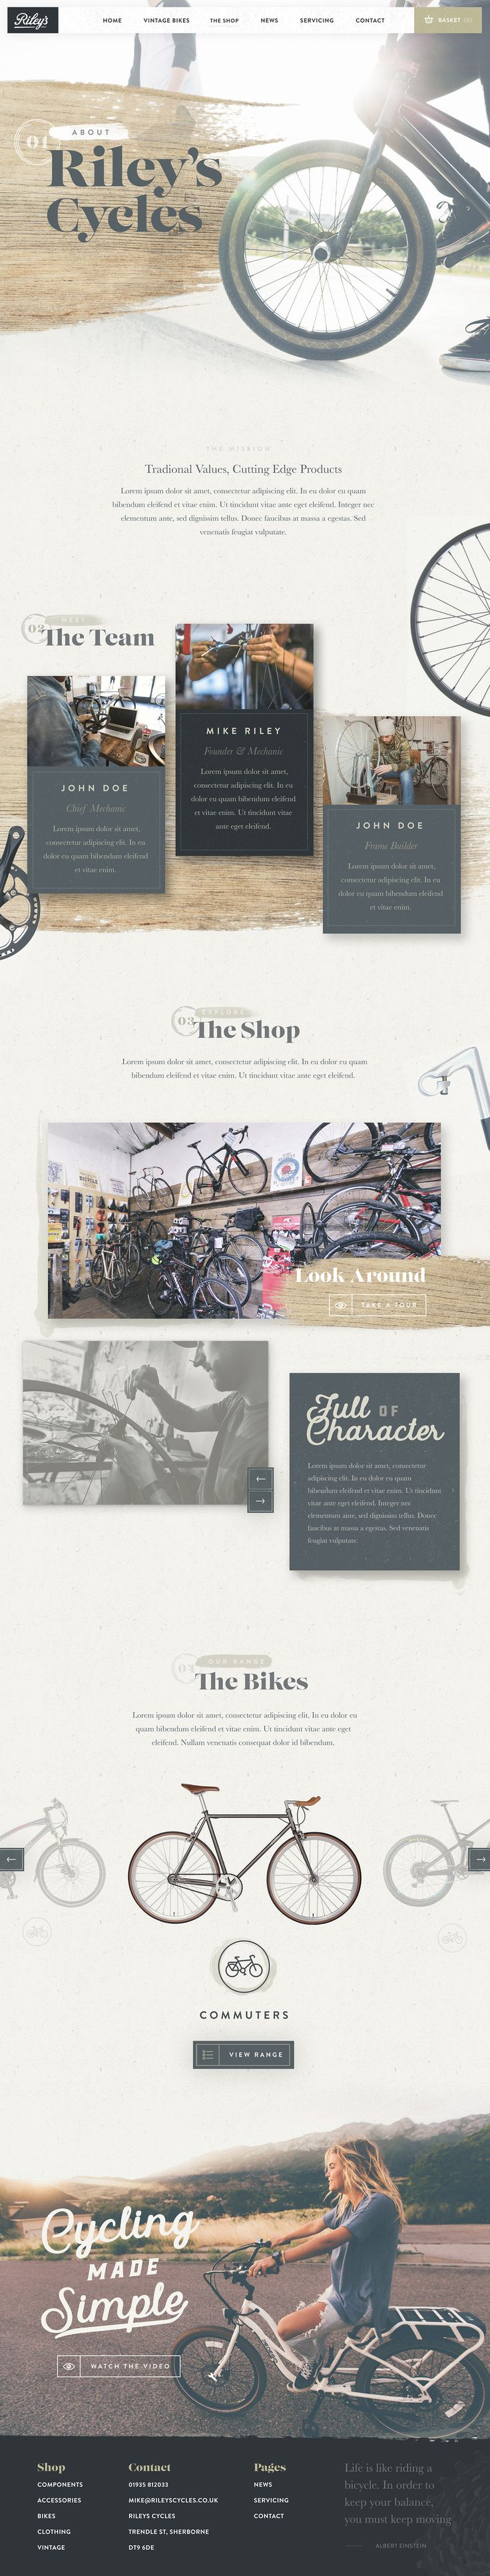 Riley's Cycles About Page by Nathan Riley for Green Chameleon